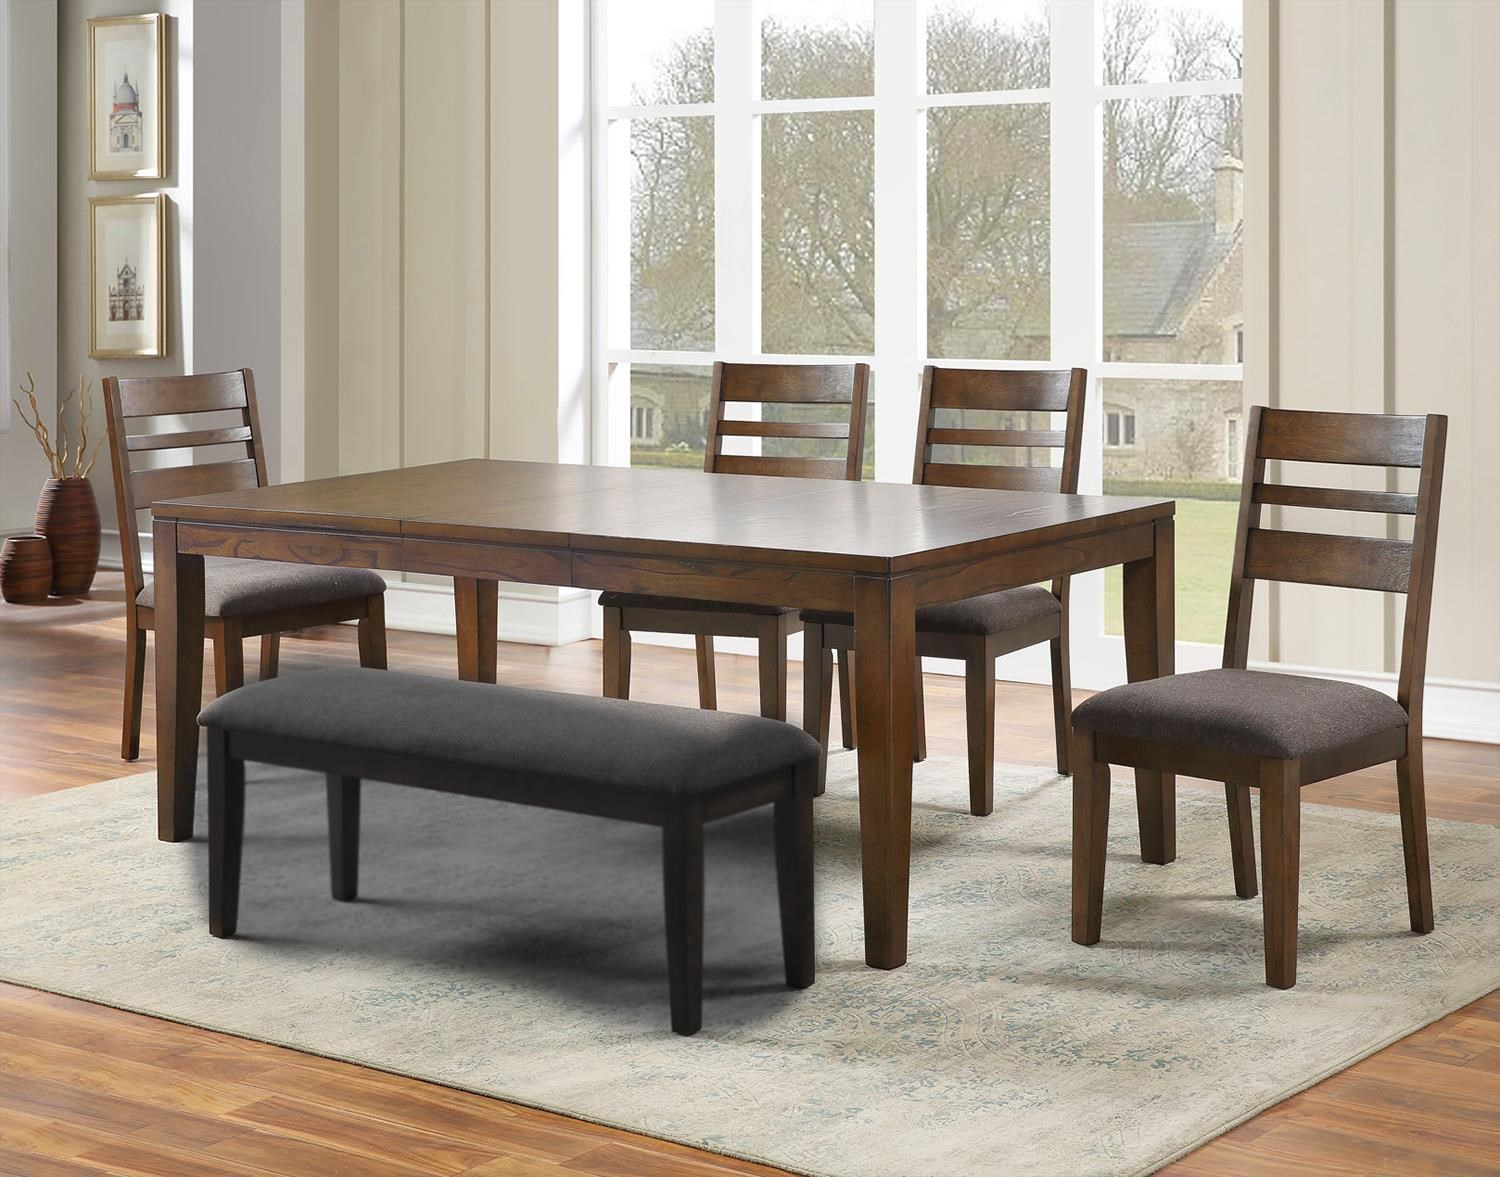 Somerville 5-Piece Table and Chair Set at Rotmans